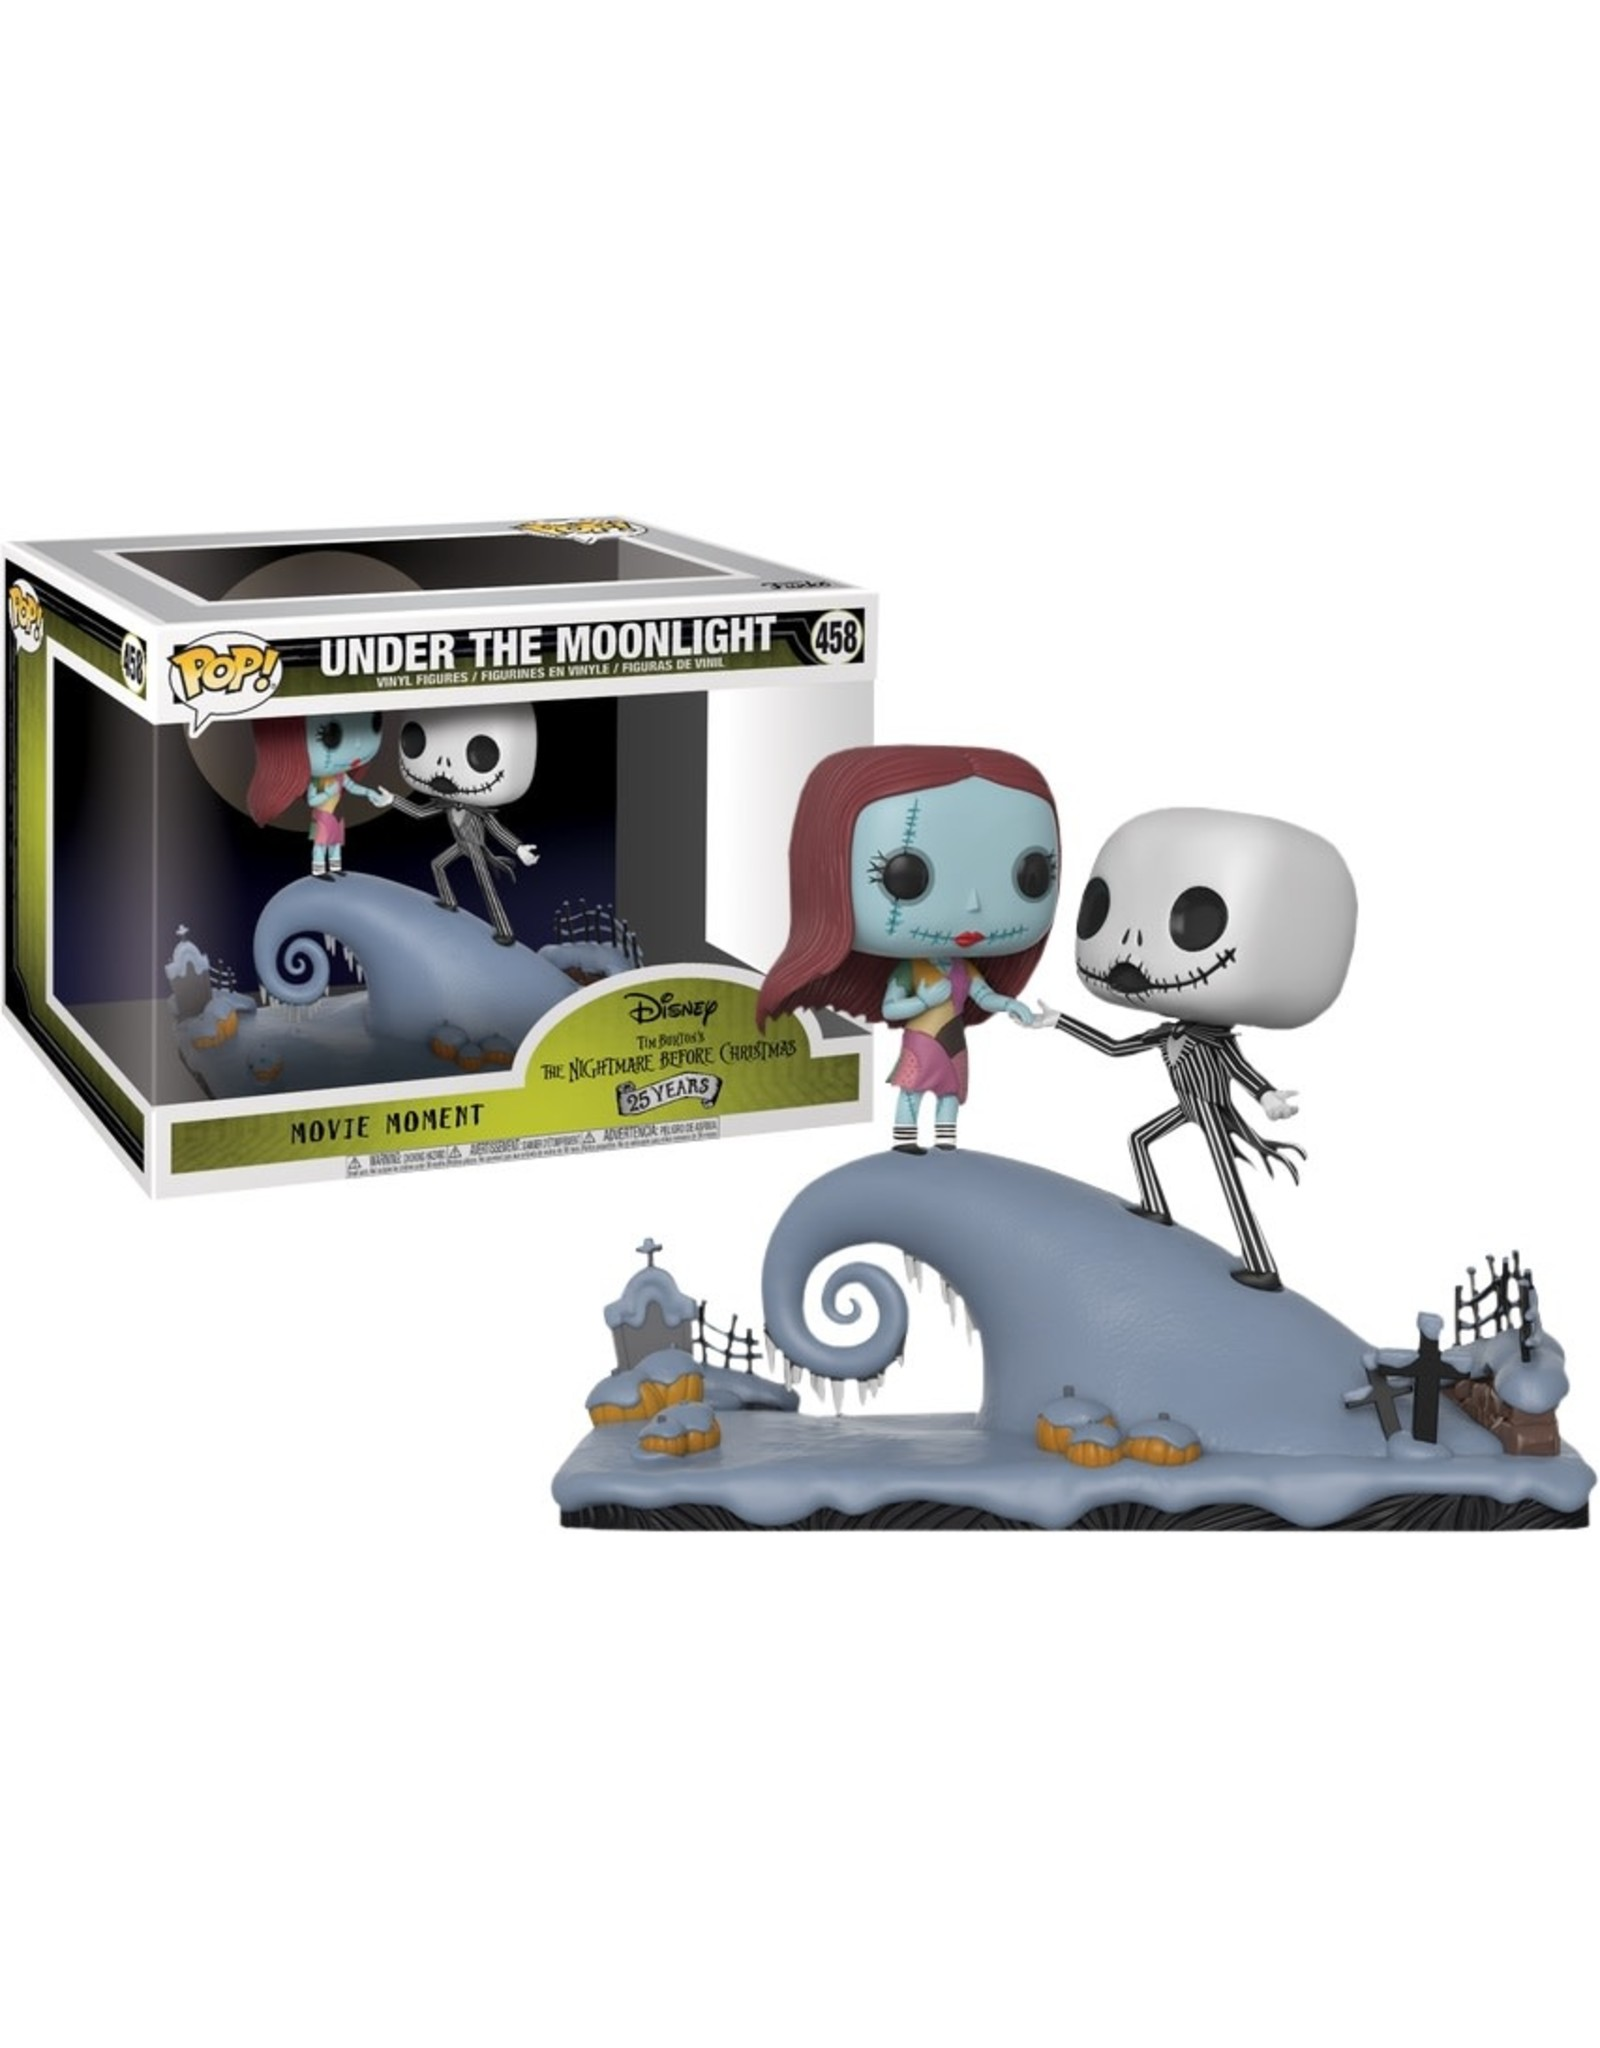 Funko THE NIGHTMARE BEFORE CHRISTMAS POP! Movie Moments N° 458 - Under the Moonlight